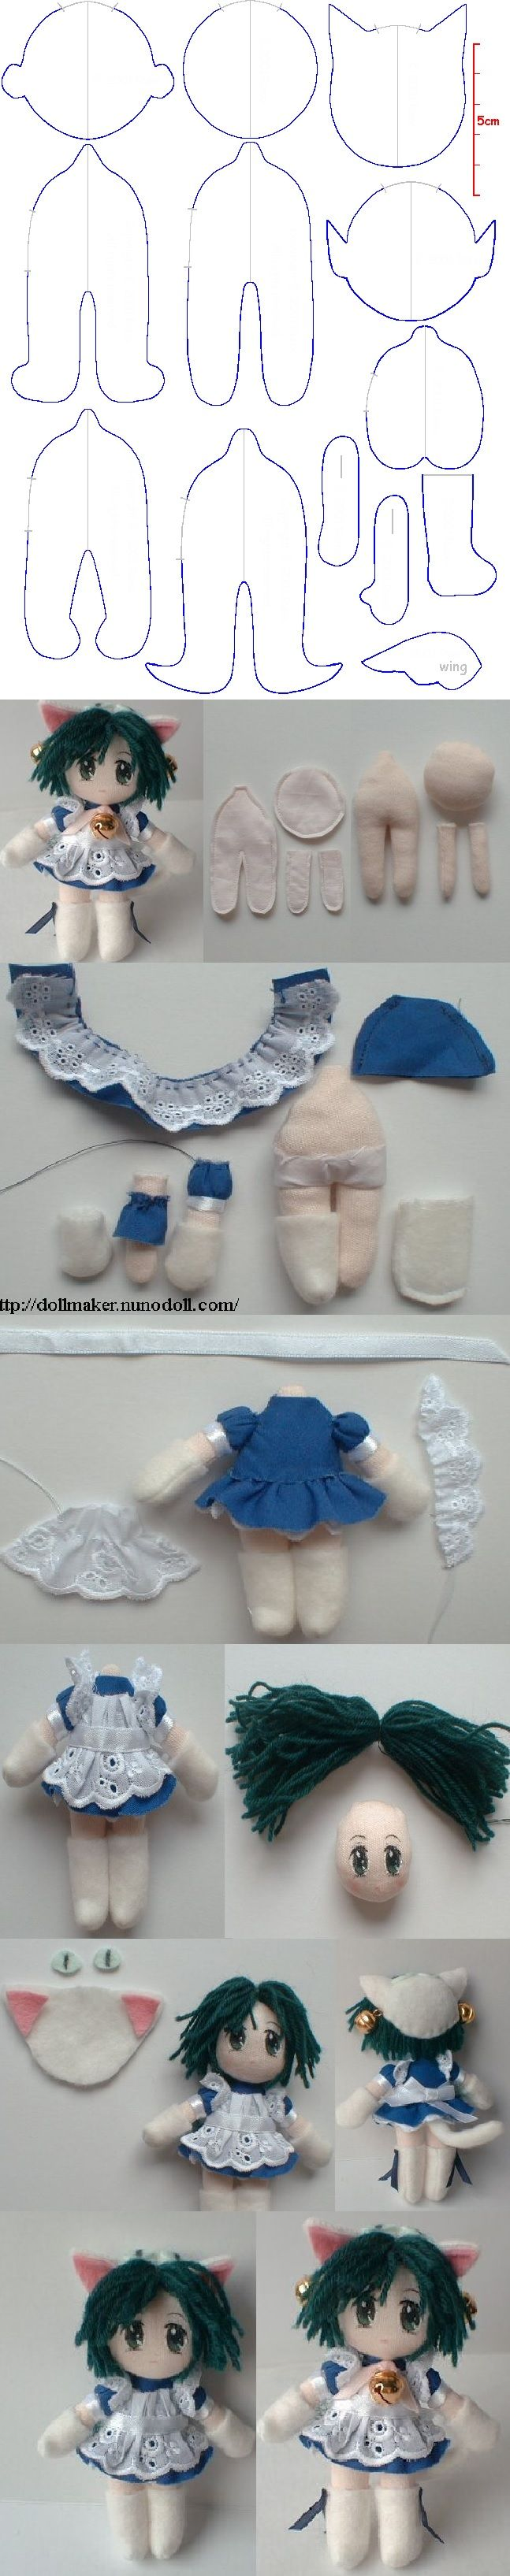 Mini doll of Di Gi Charat (Princess Dejiko) Pattern for 4 inches http://dollmaker.nunodoll.com/anime/digi_charat.html http://dollmaker.nunodoll.com/